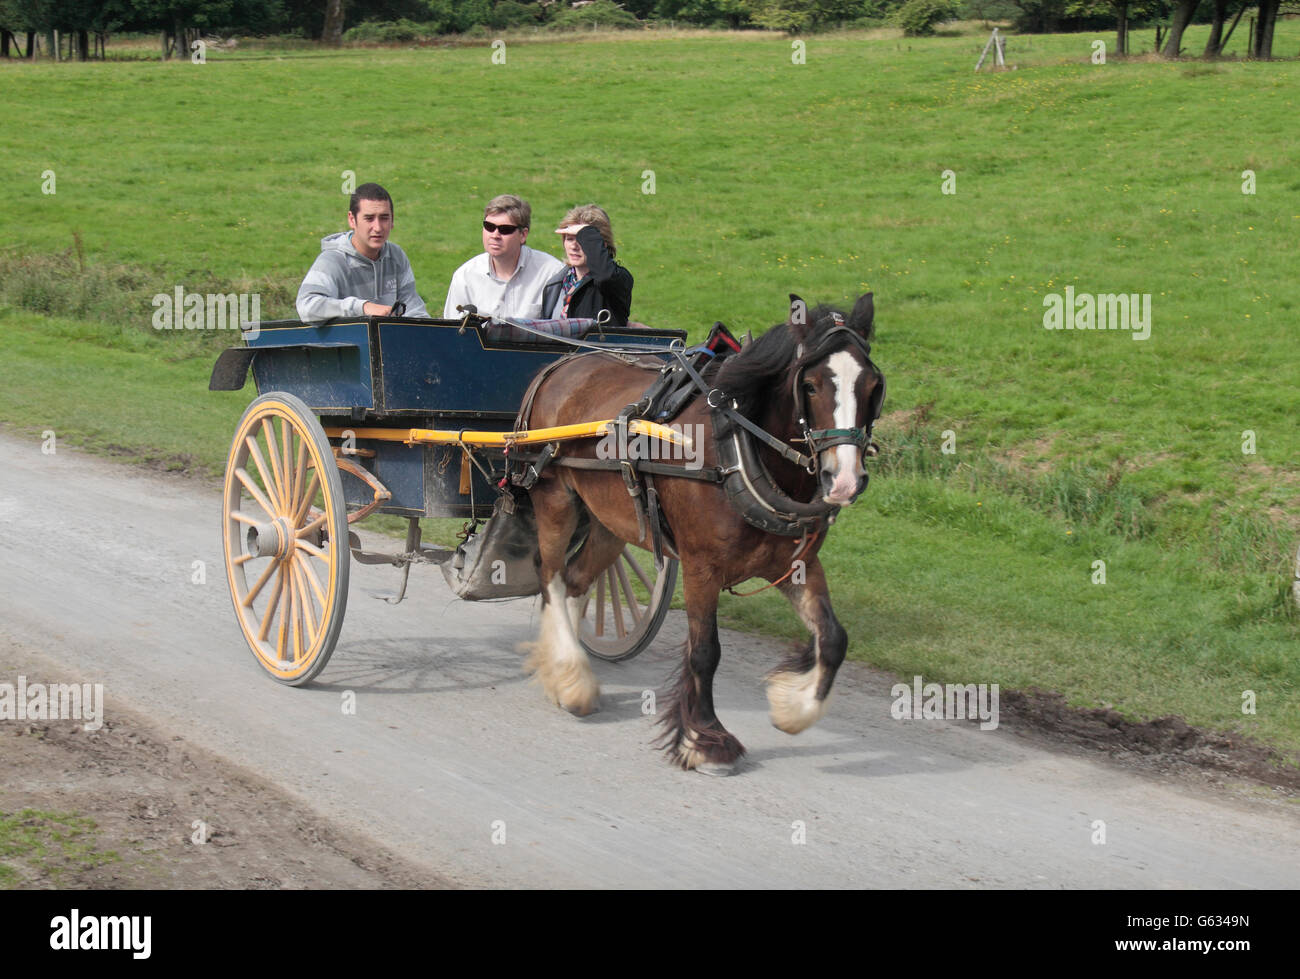 Tourists on a horse trap ride (horse & carriage) Muckross House, Killarney in County Kerry, Ireland. - Stock Image